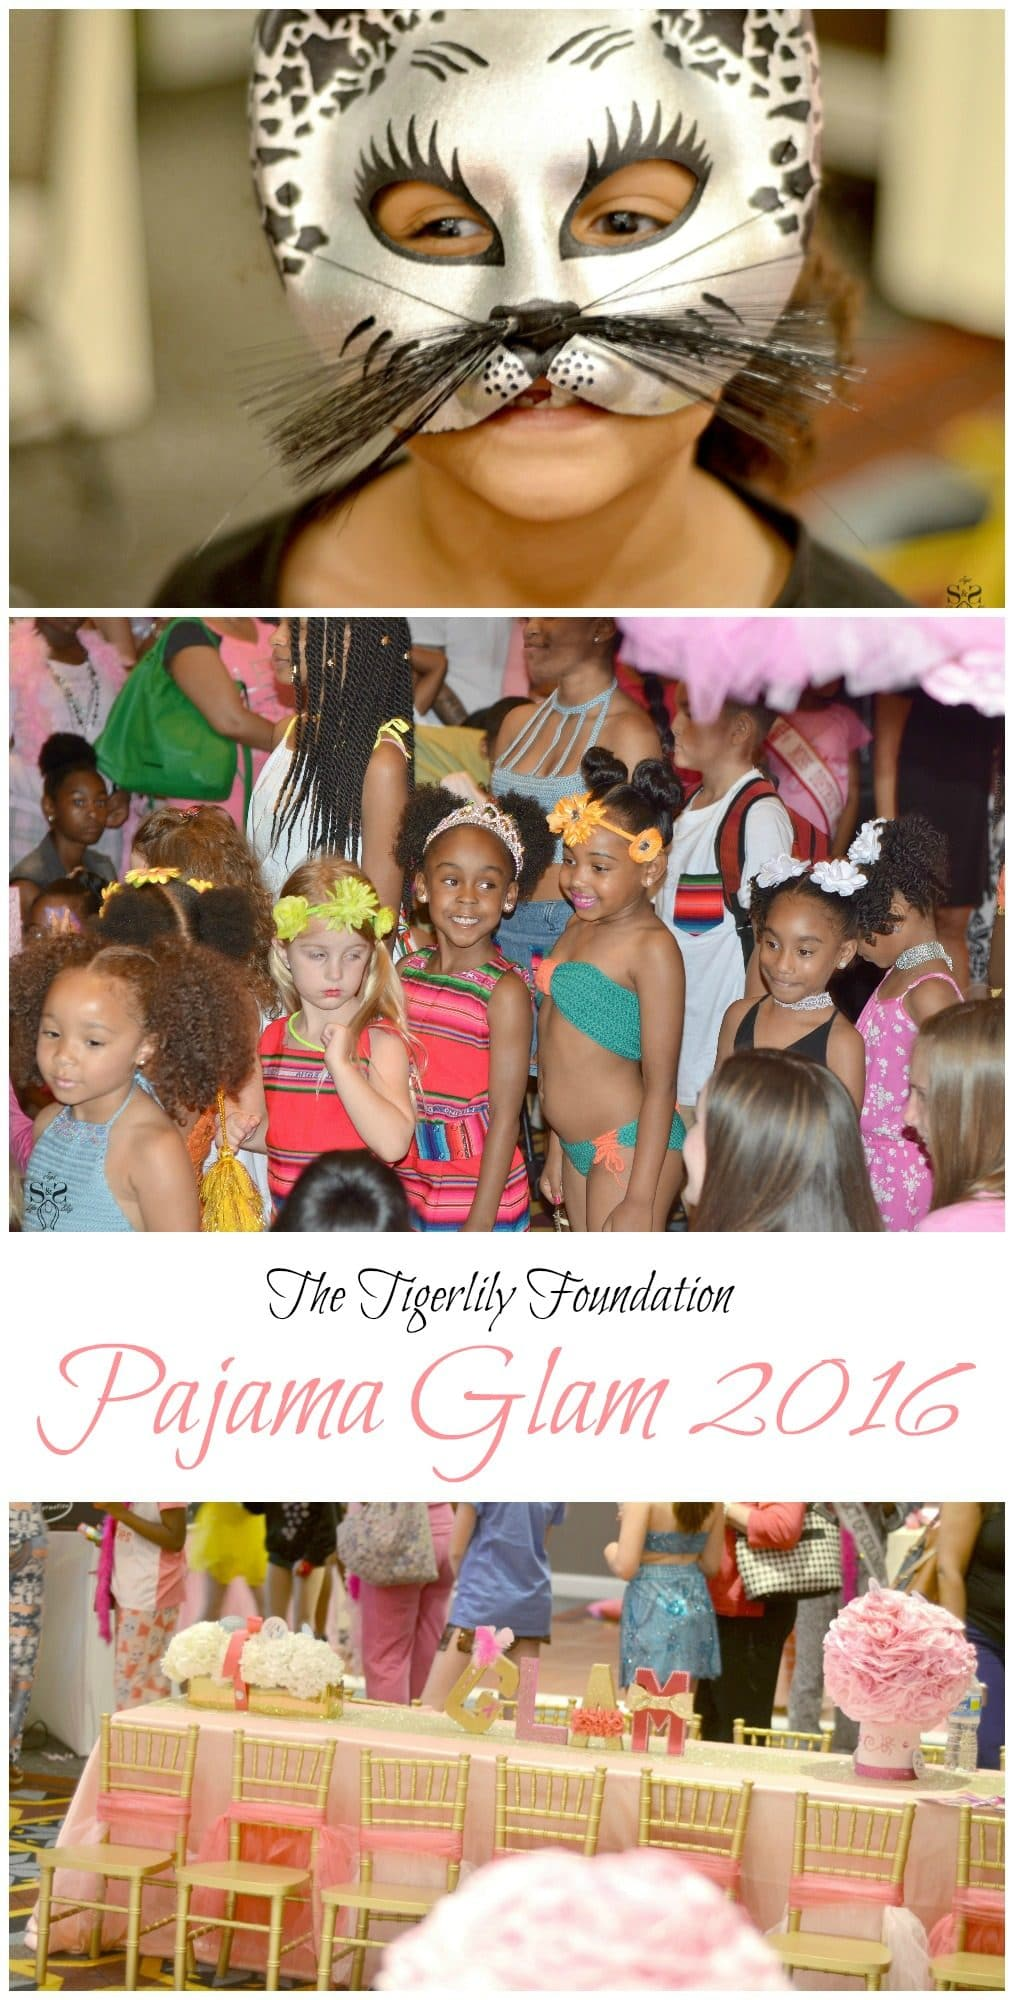 Pajama Glam Shareable